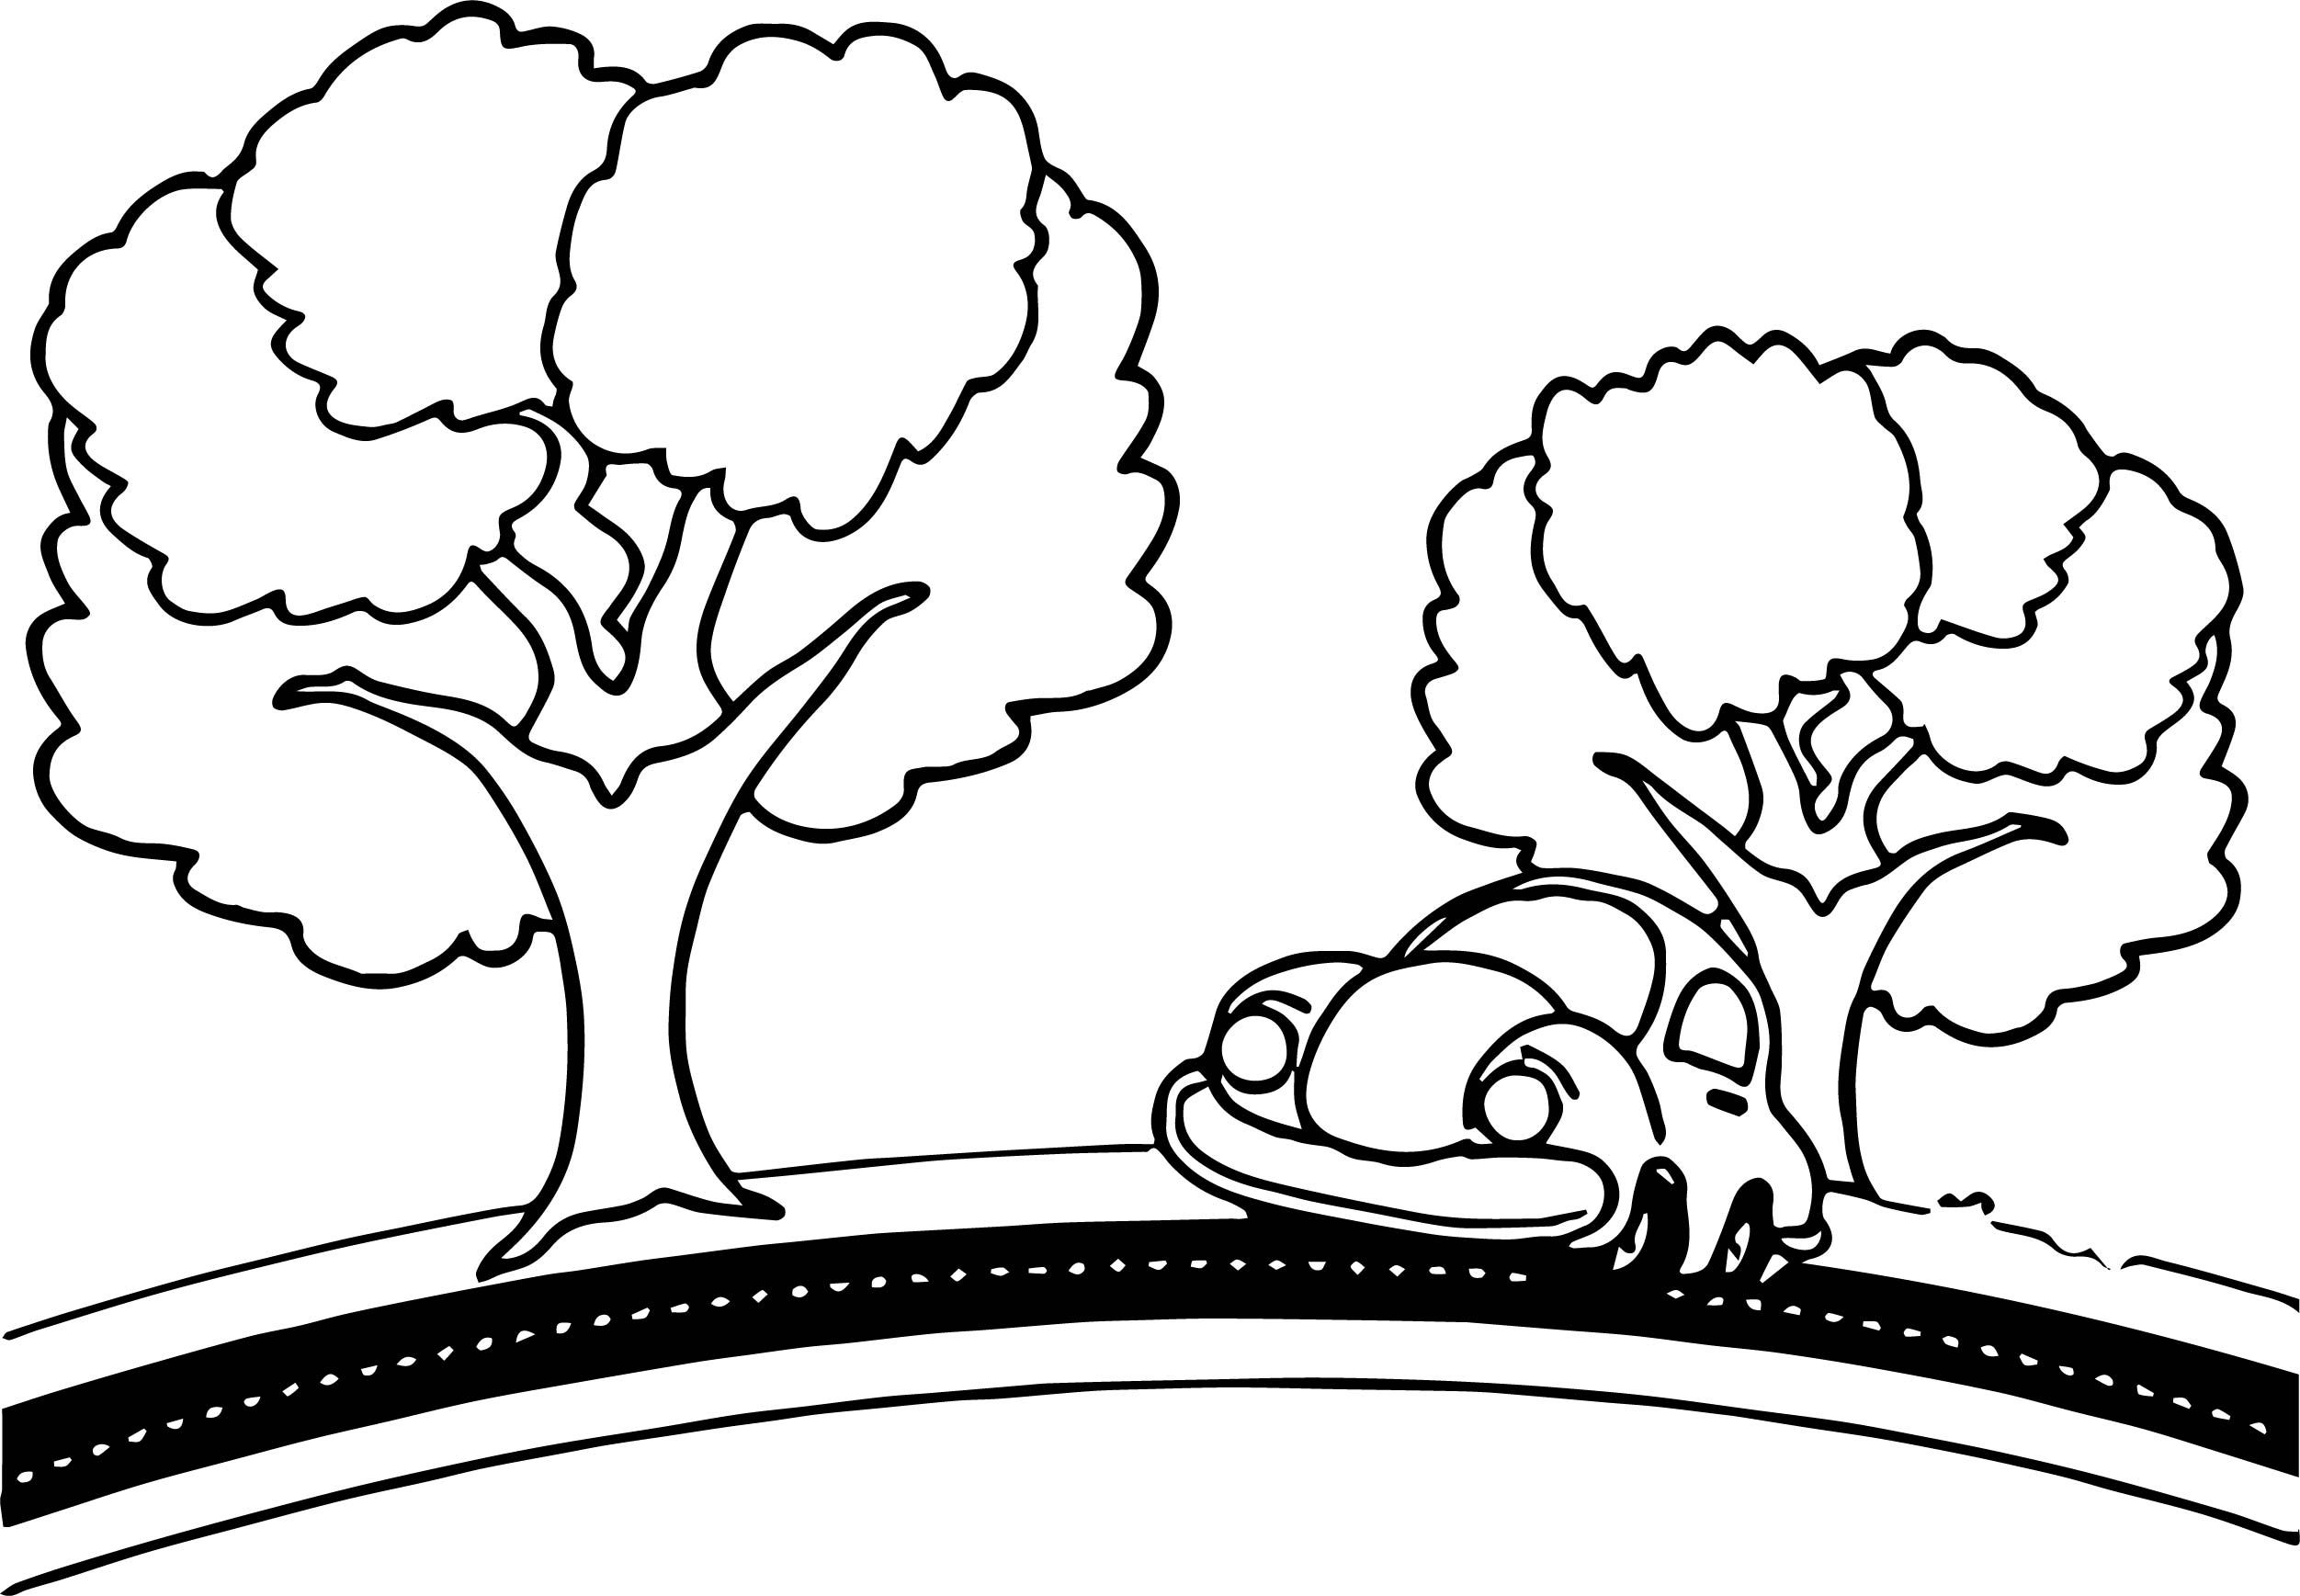 Car Tree Road Coloring Page Coloring pages, Cool cars